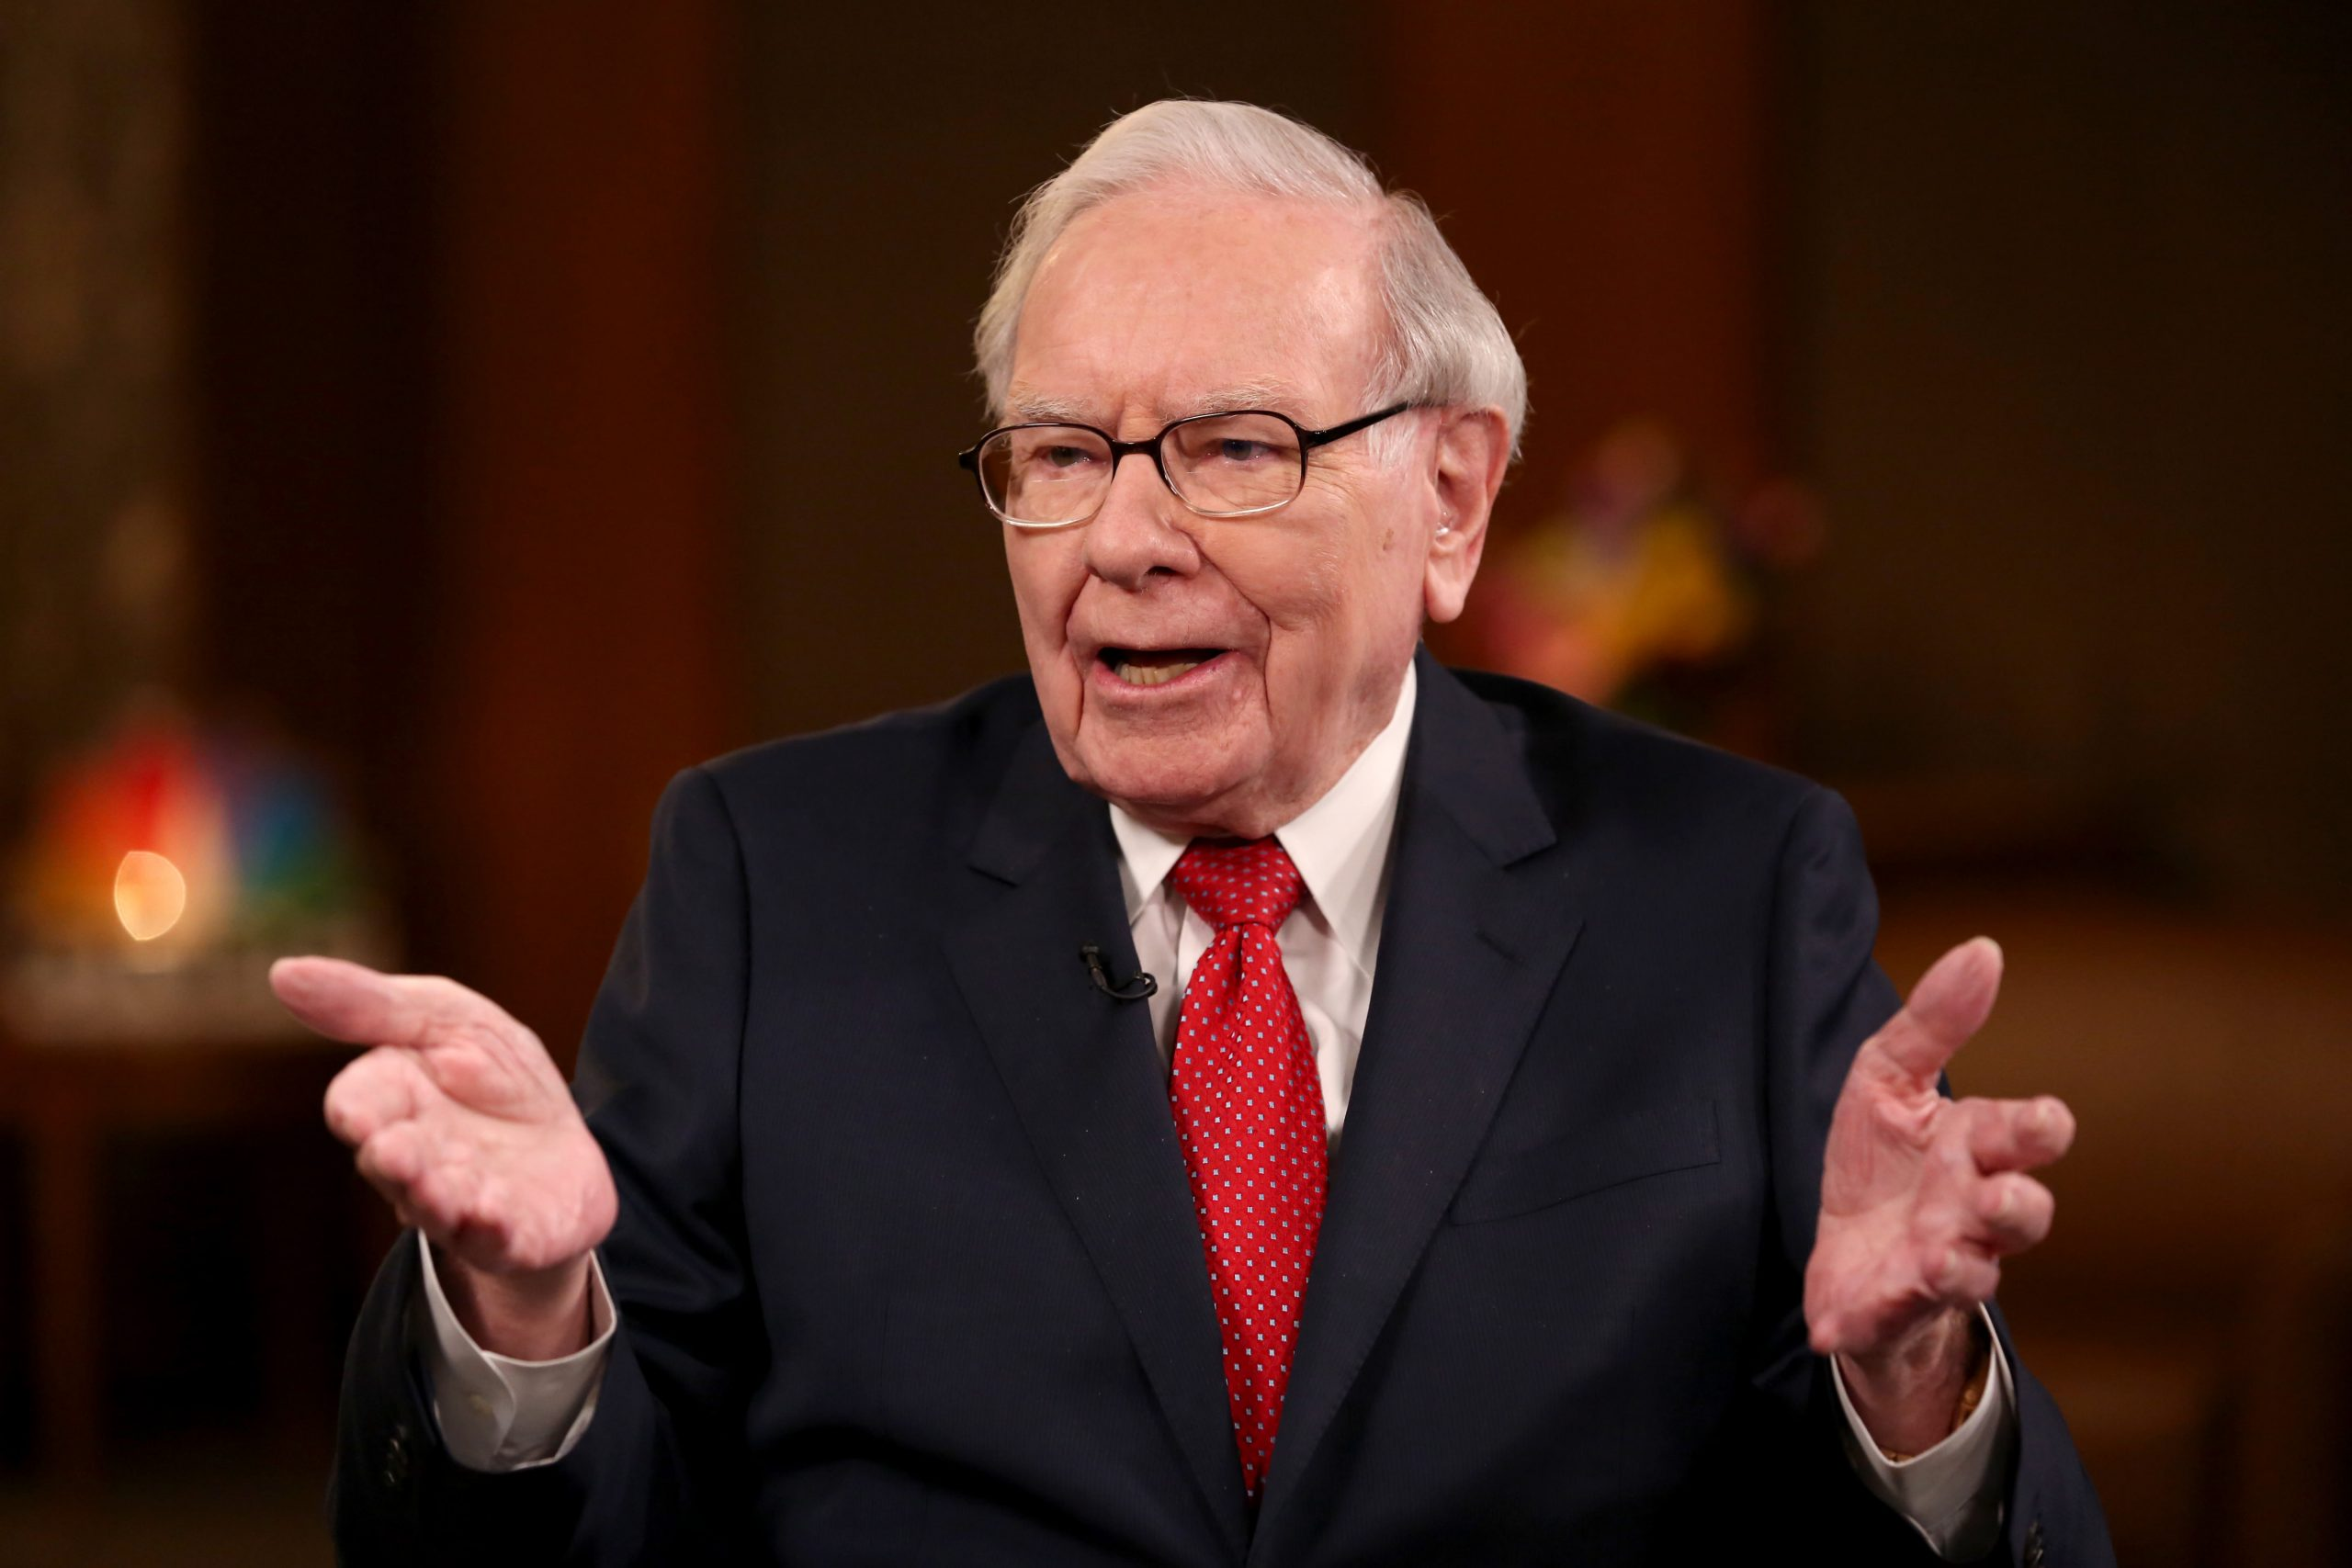 Buffett's Berkshire Hathaway simply made $800 million on Snowflake's IPO